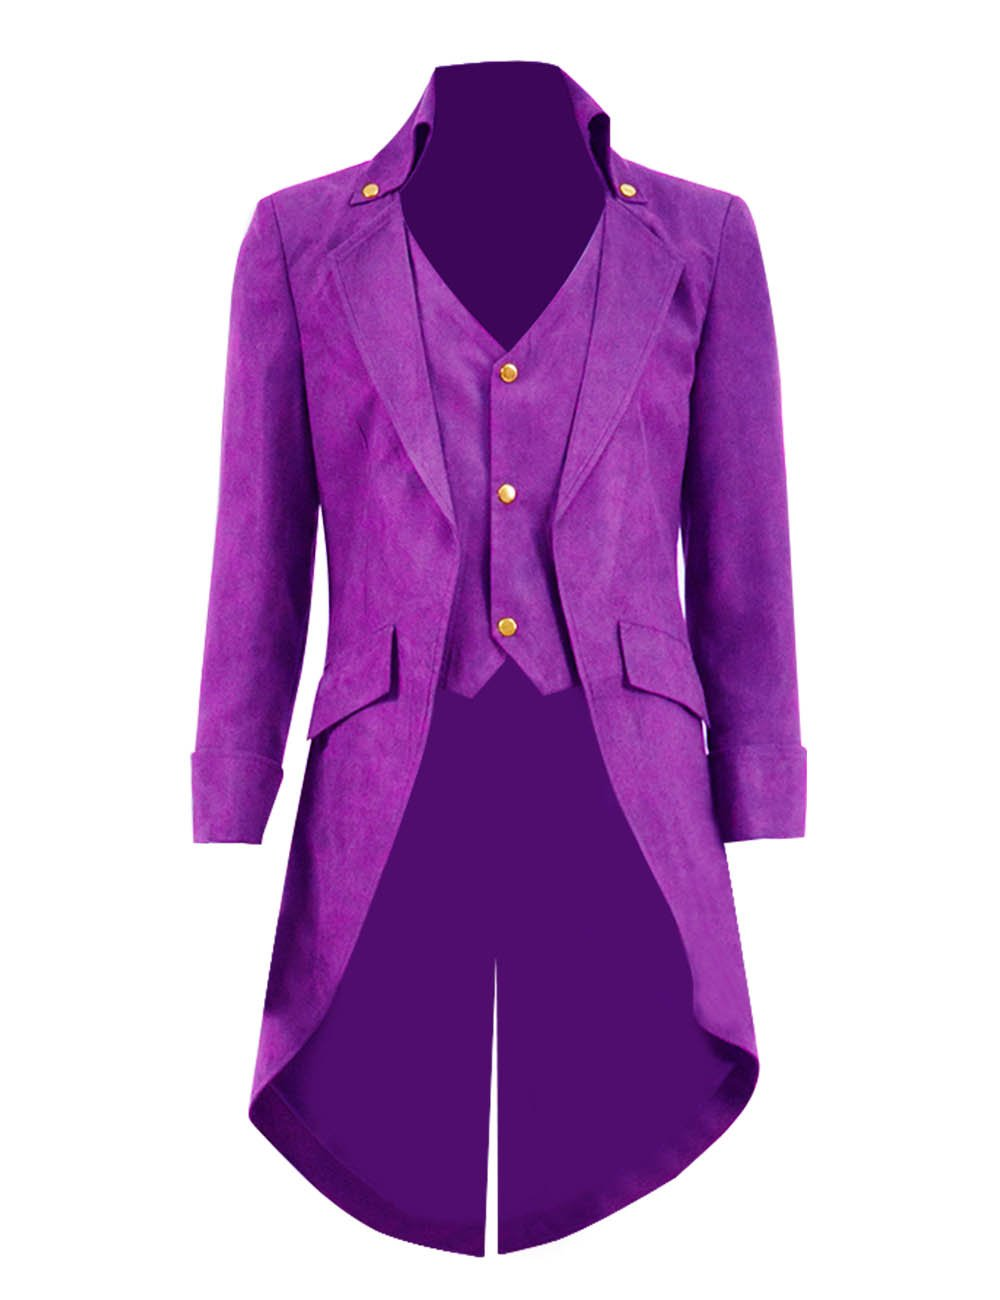 Very Last Shop Mens Gothic Tailcoat Jacket Black Steampunk Victorian Long Coat Halloween Costume (US Men-S, Bright Purple(Faux-Suede)) by Very Last Shop